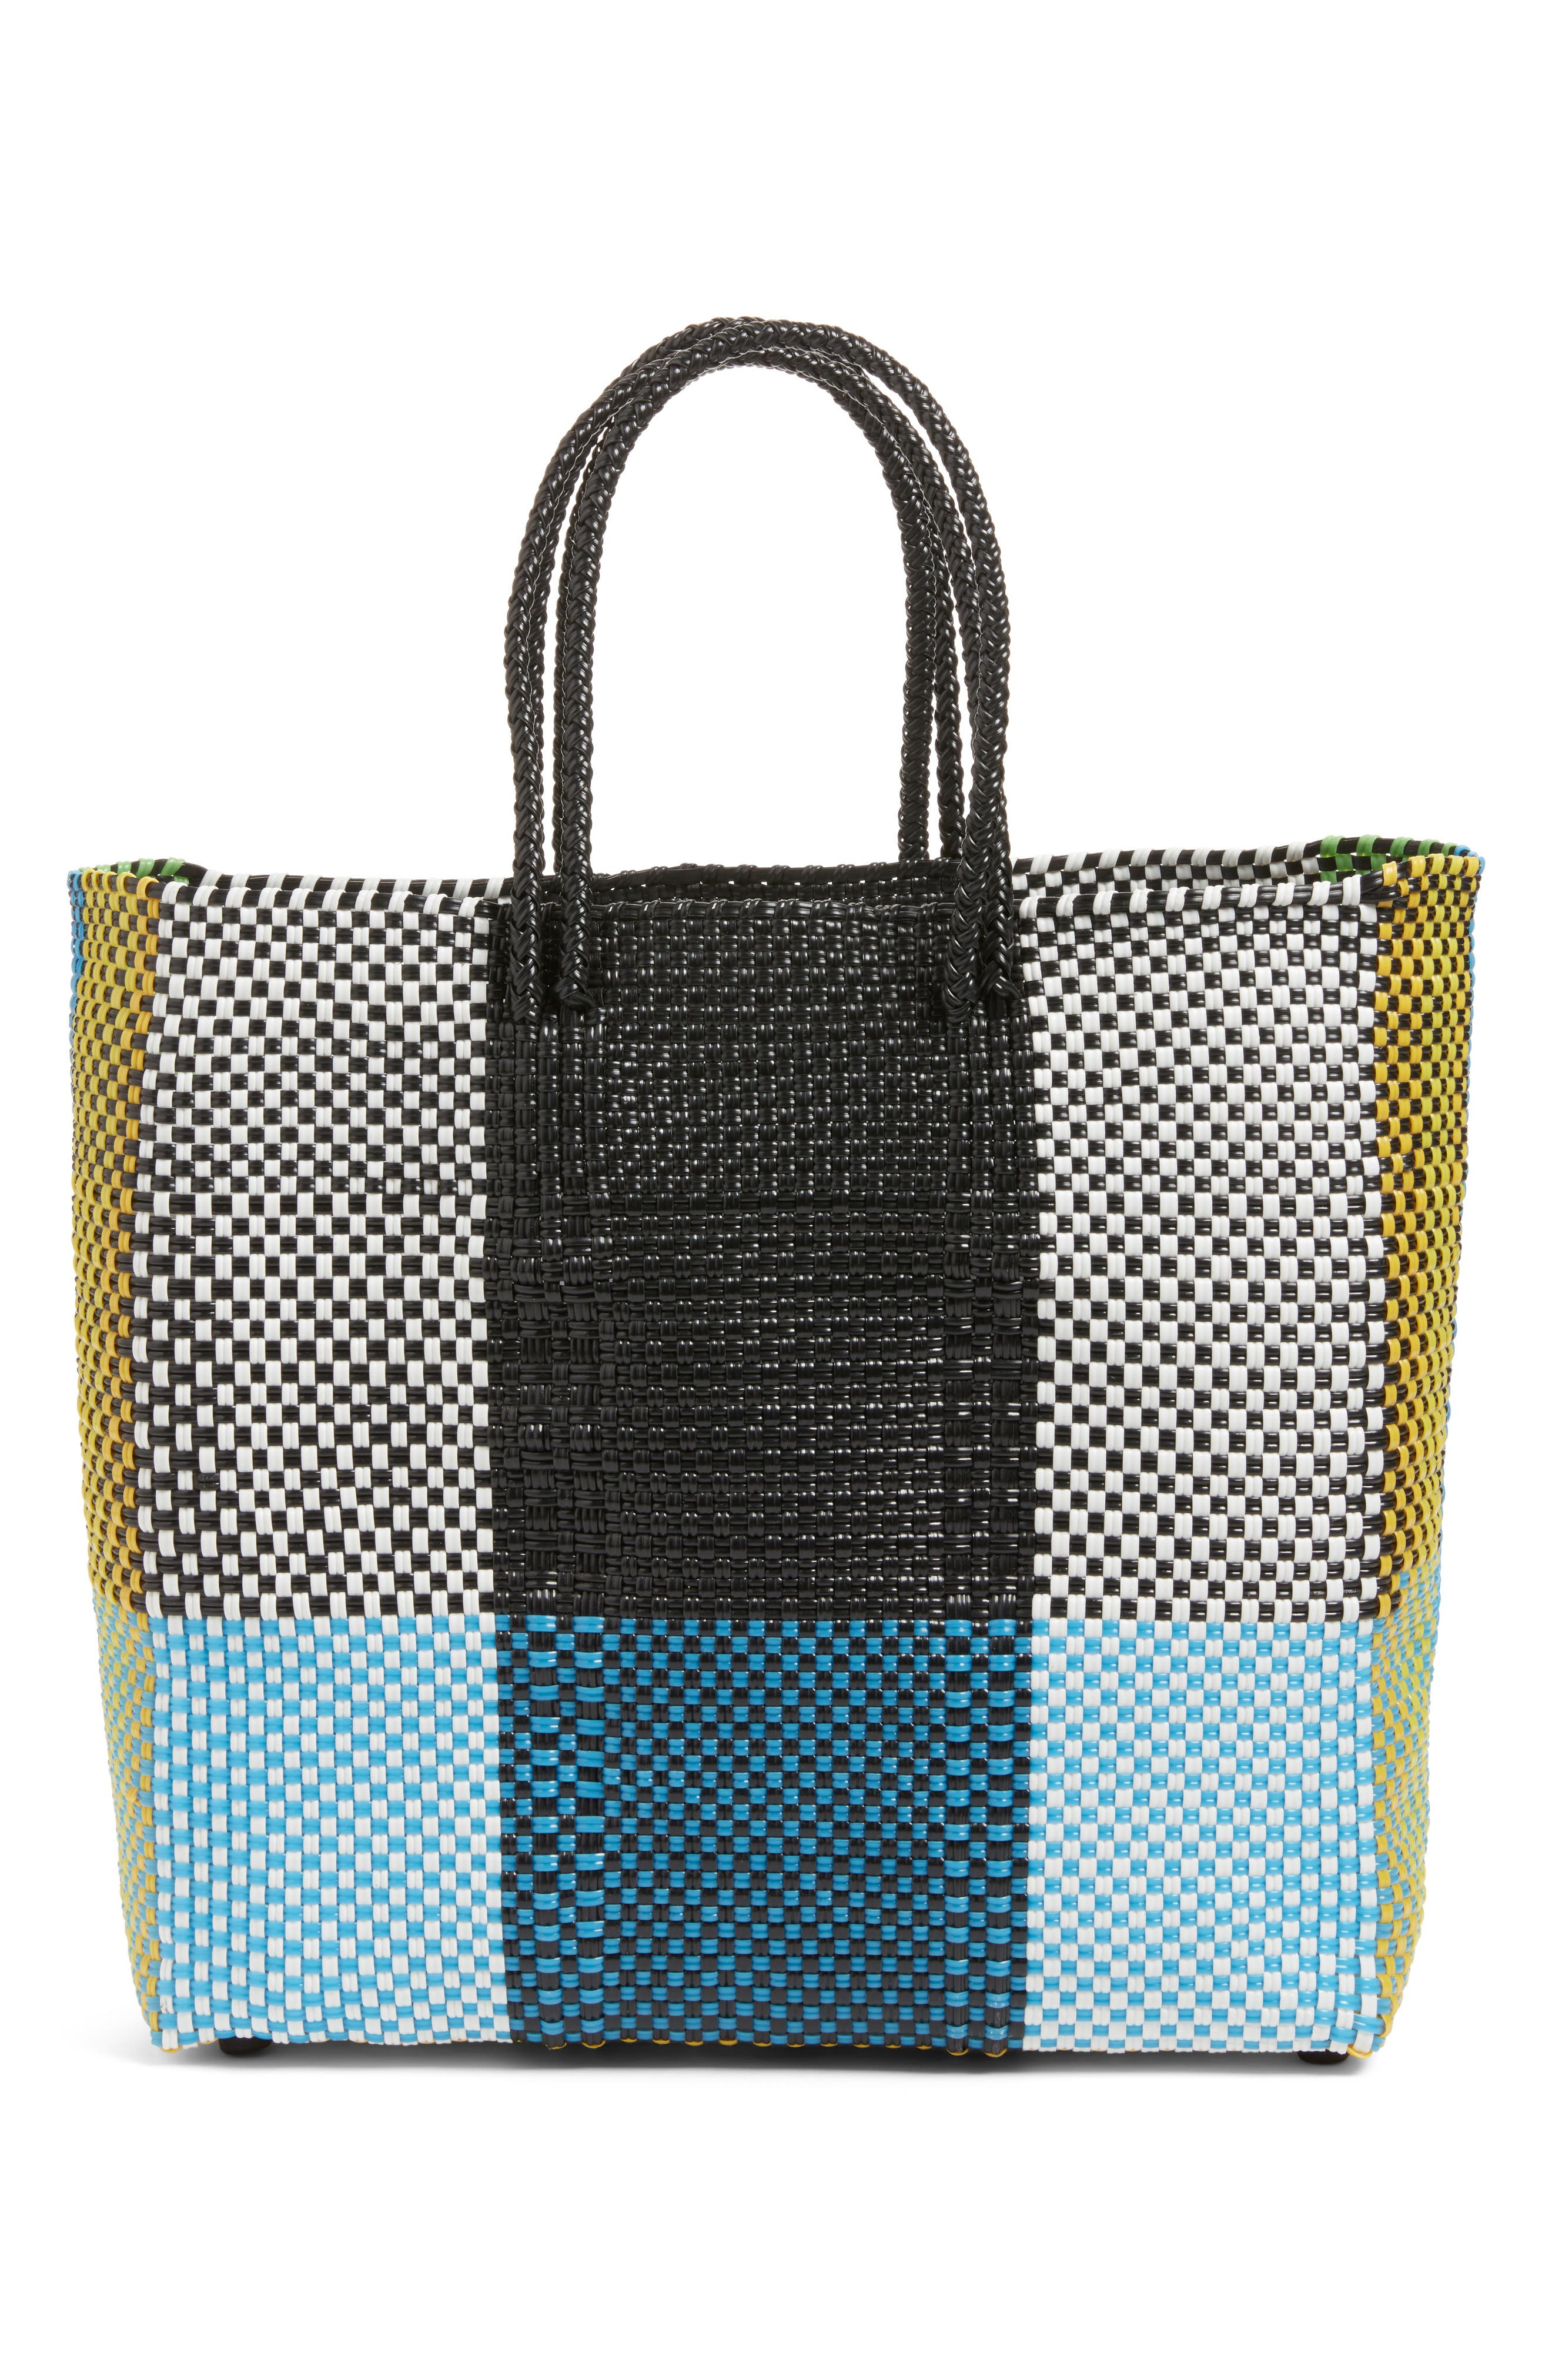 Medium Woven Tote,                         Main,                         color, Green/ Yellow